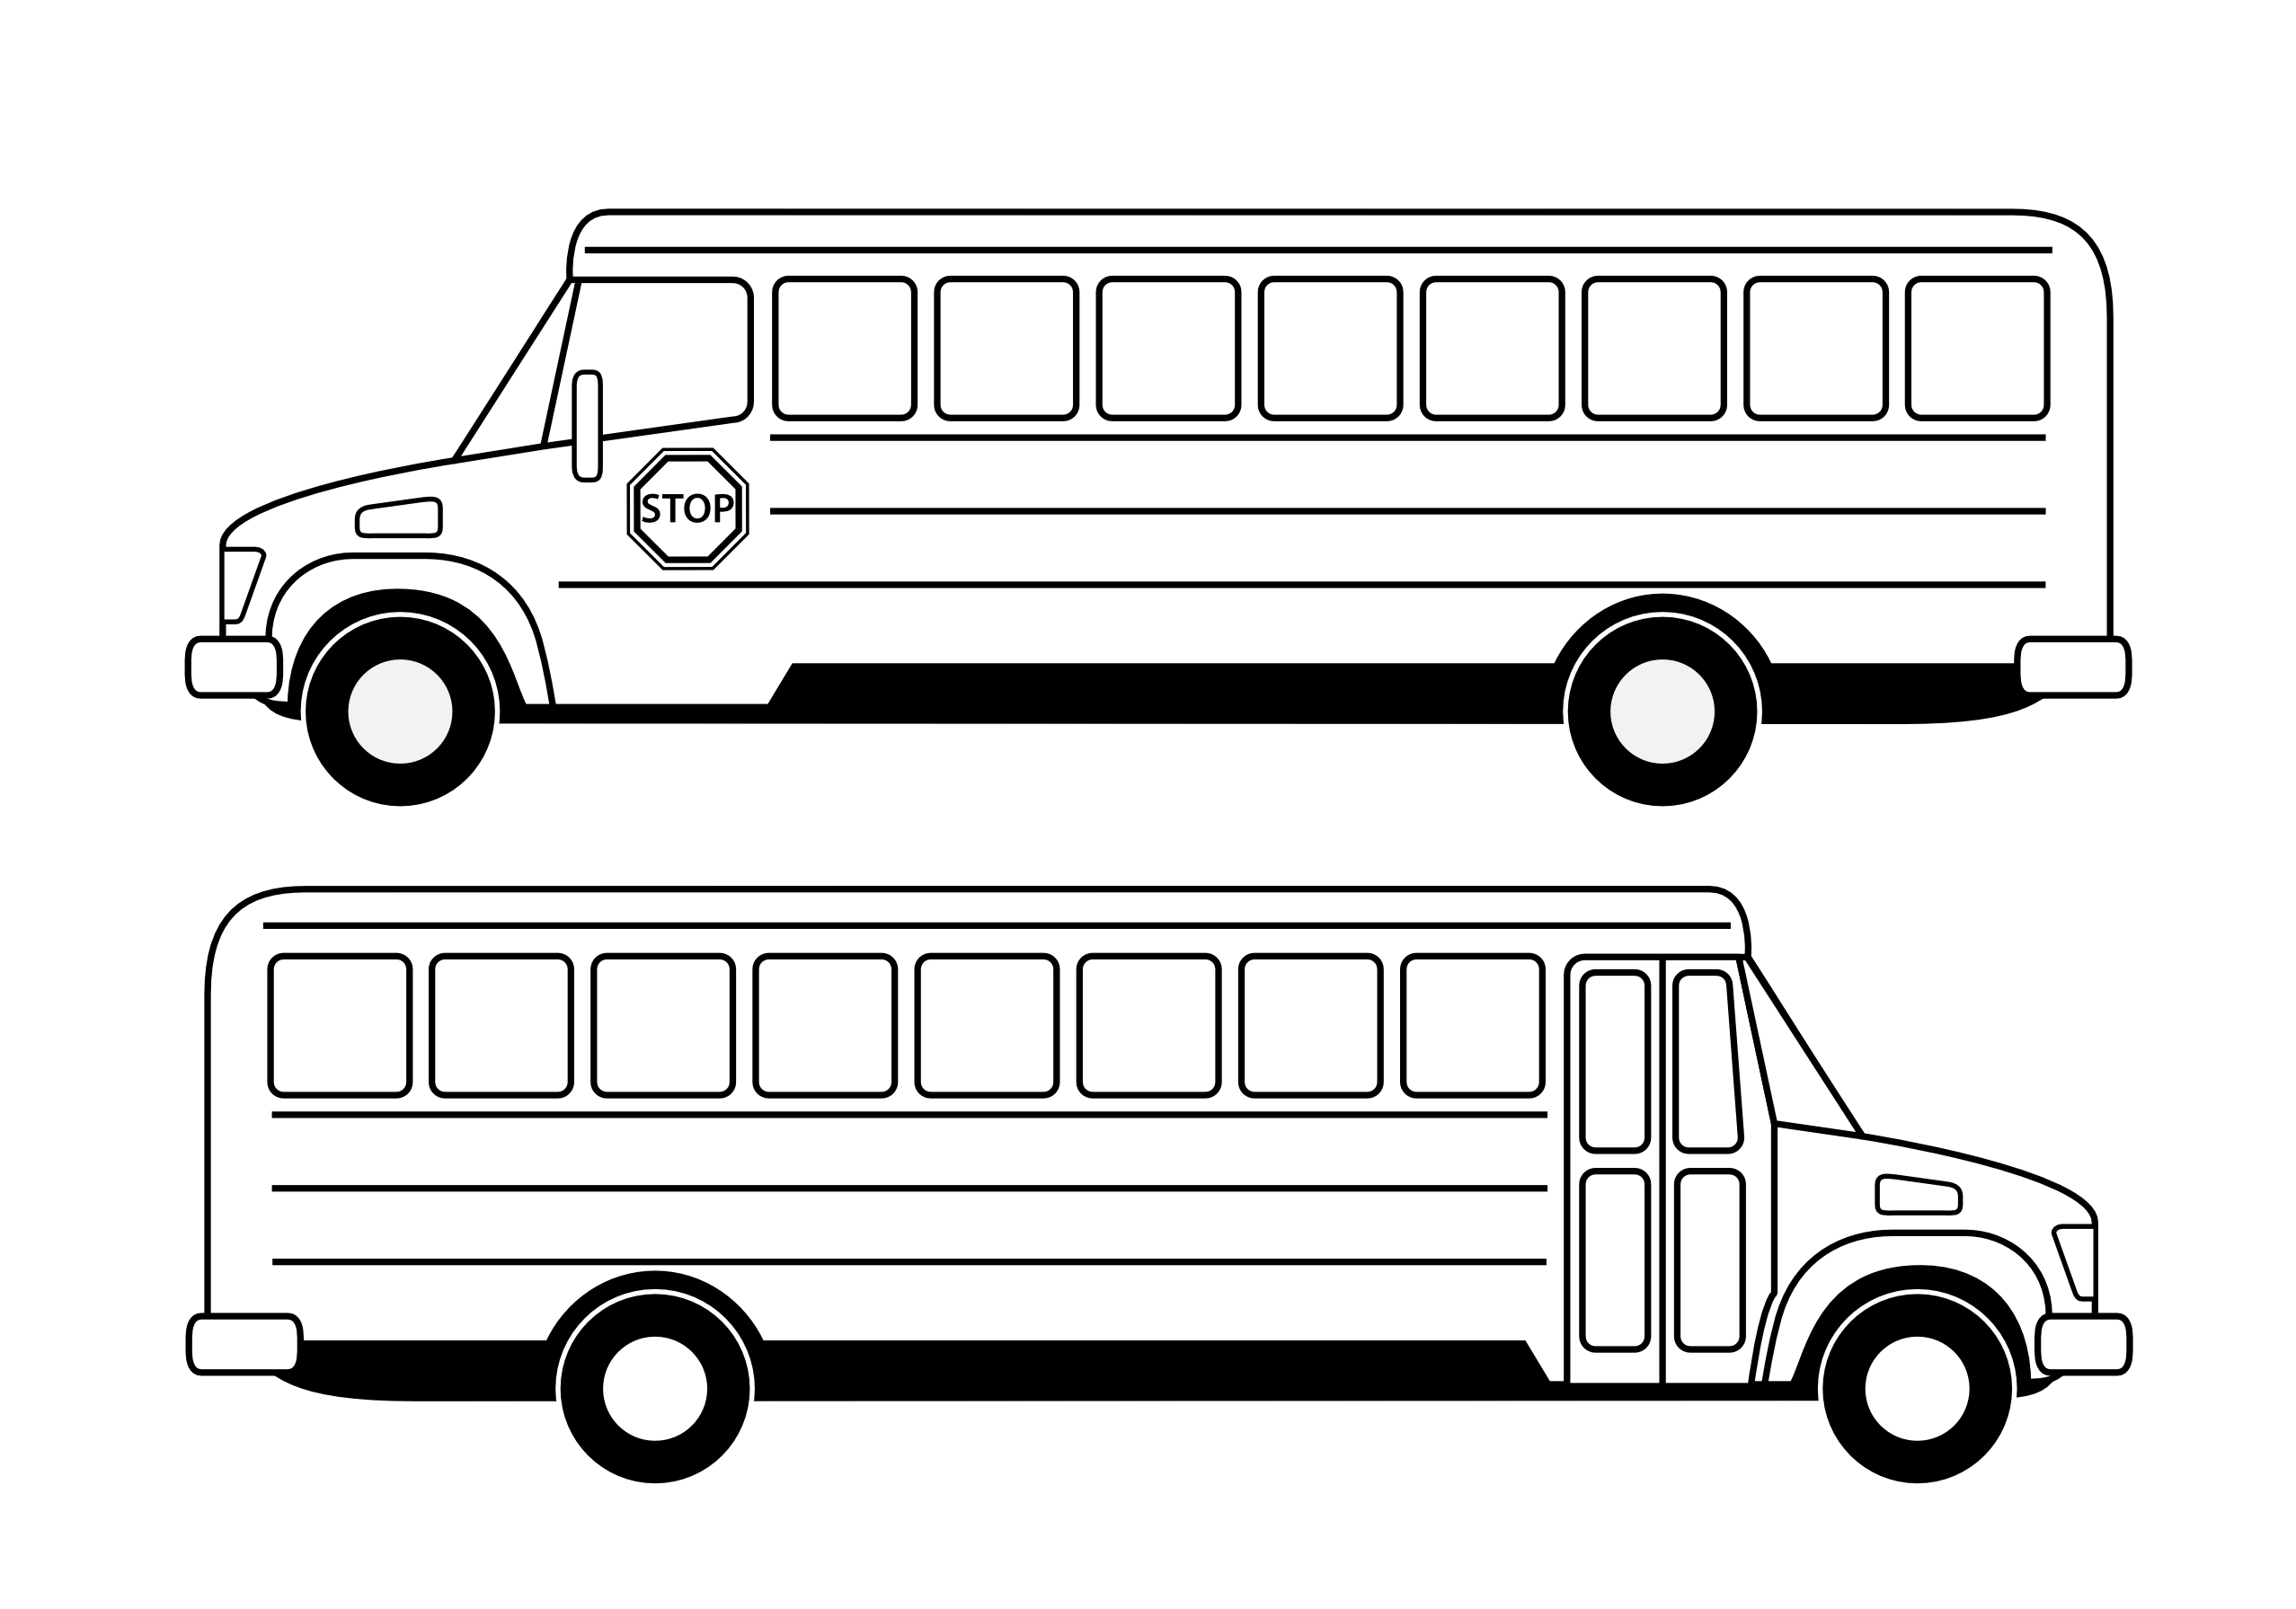 School bus clipart images 3 school bus clip art vector 4 4.